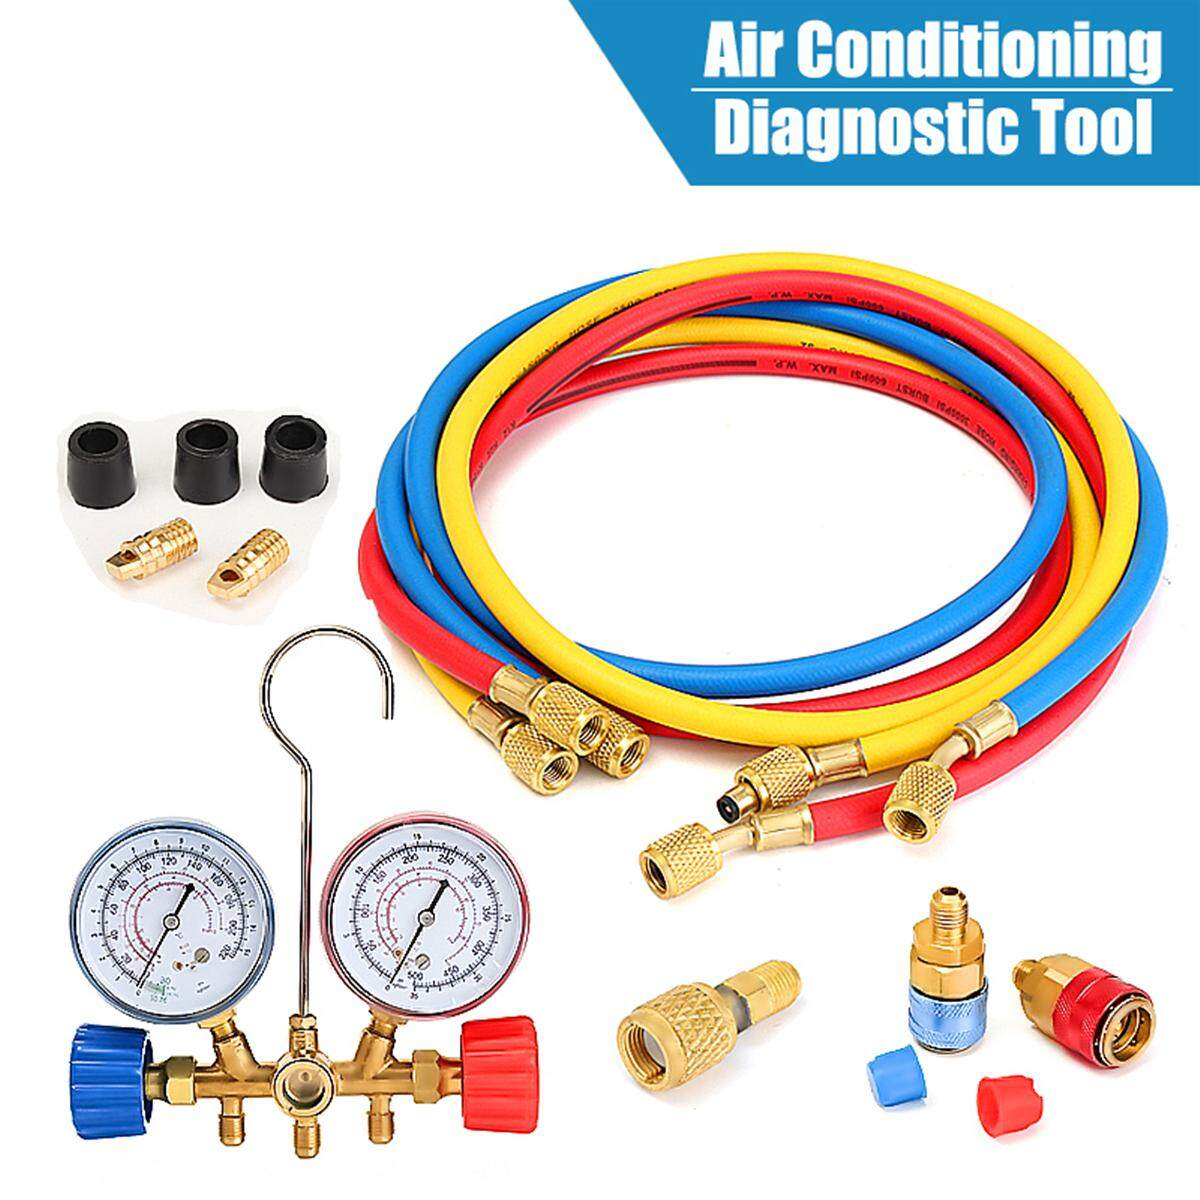 with Couplers and ACME Adapter 5FT AC Diagnostic Manifold Freon Gauge Set for R134A R12 R22 and R502 Refrigerants